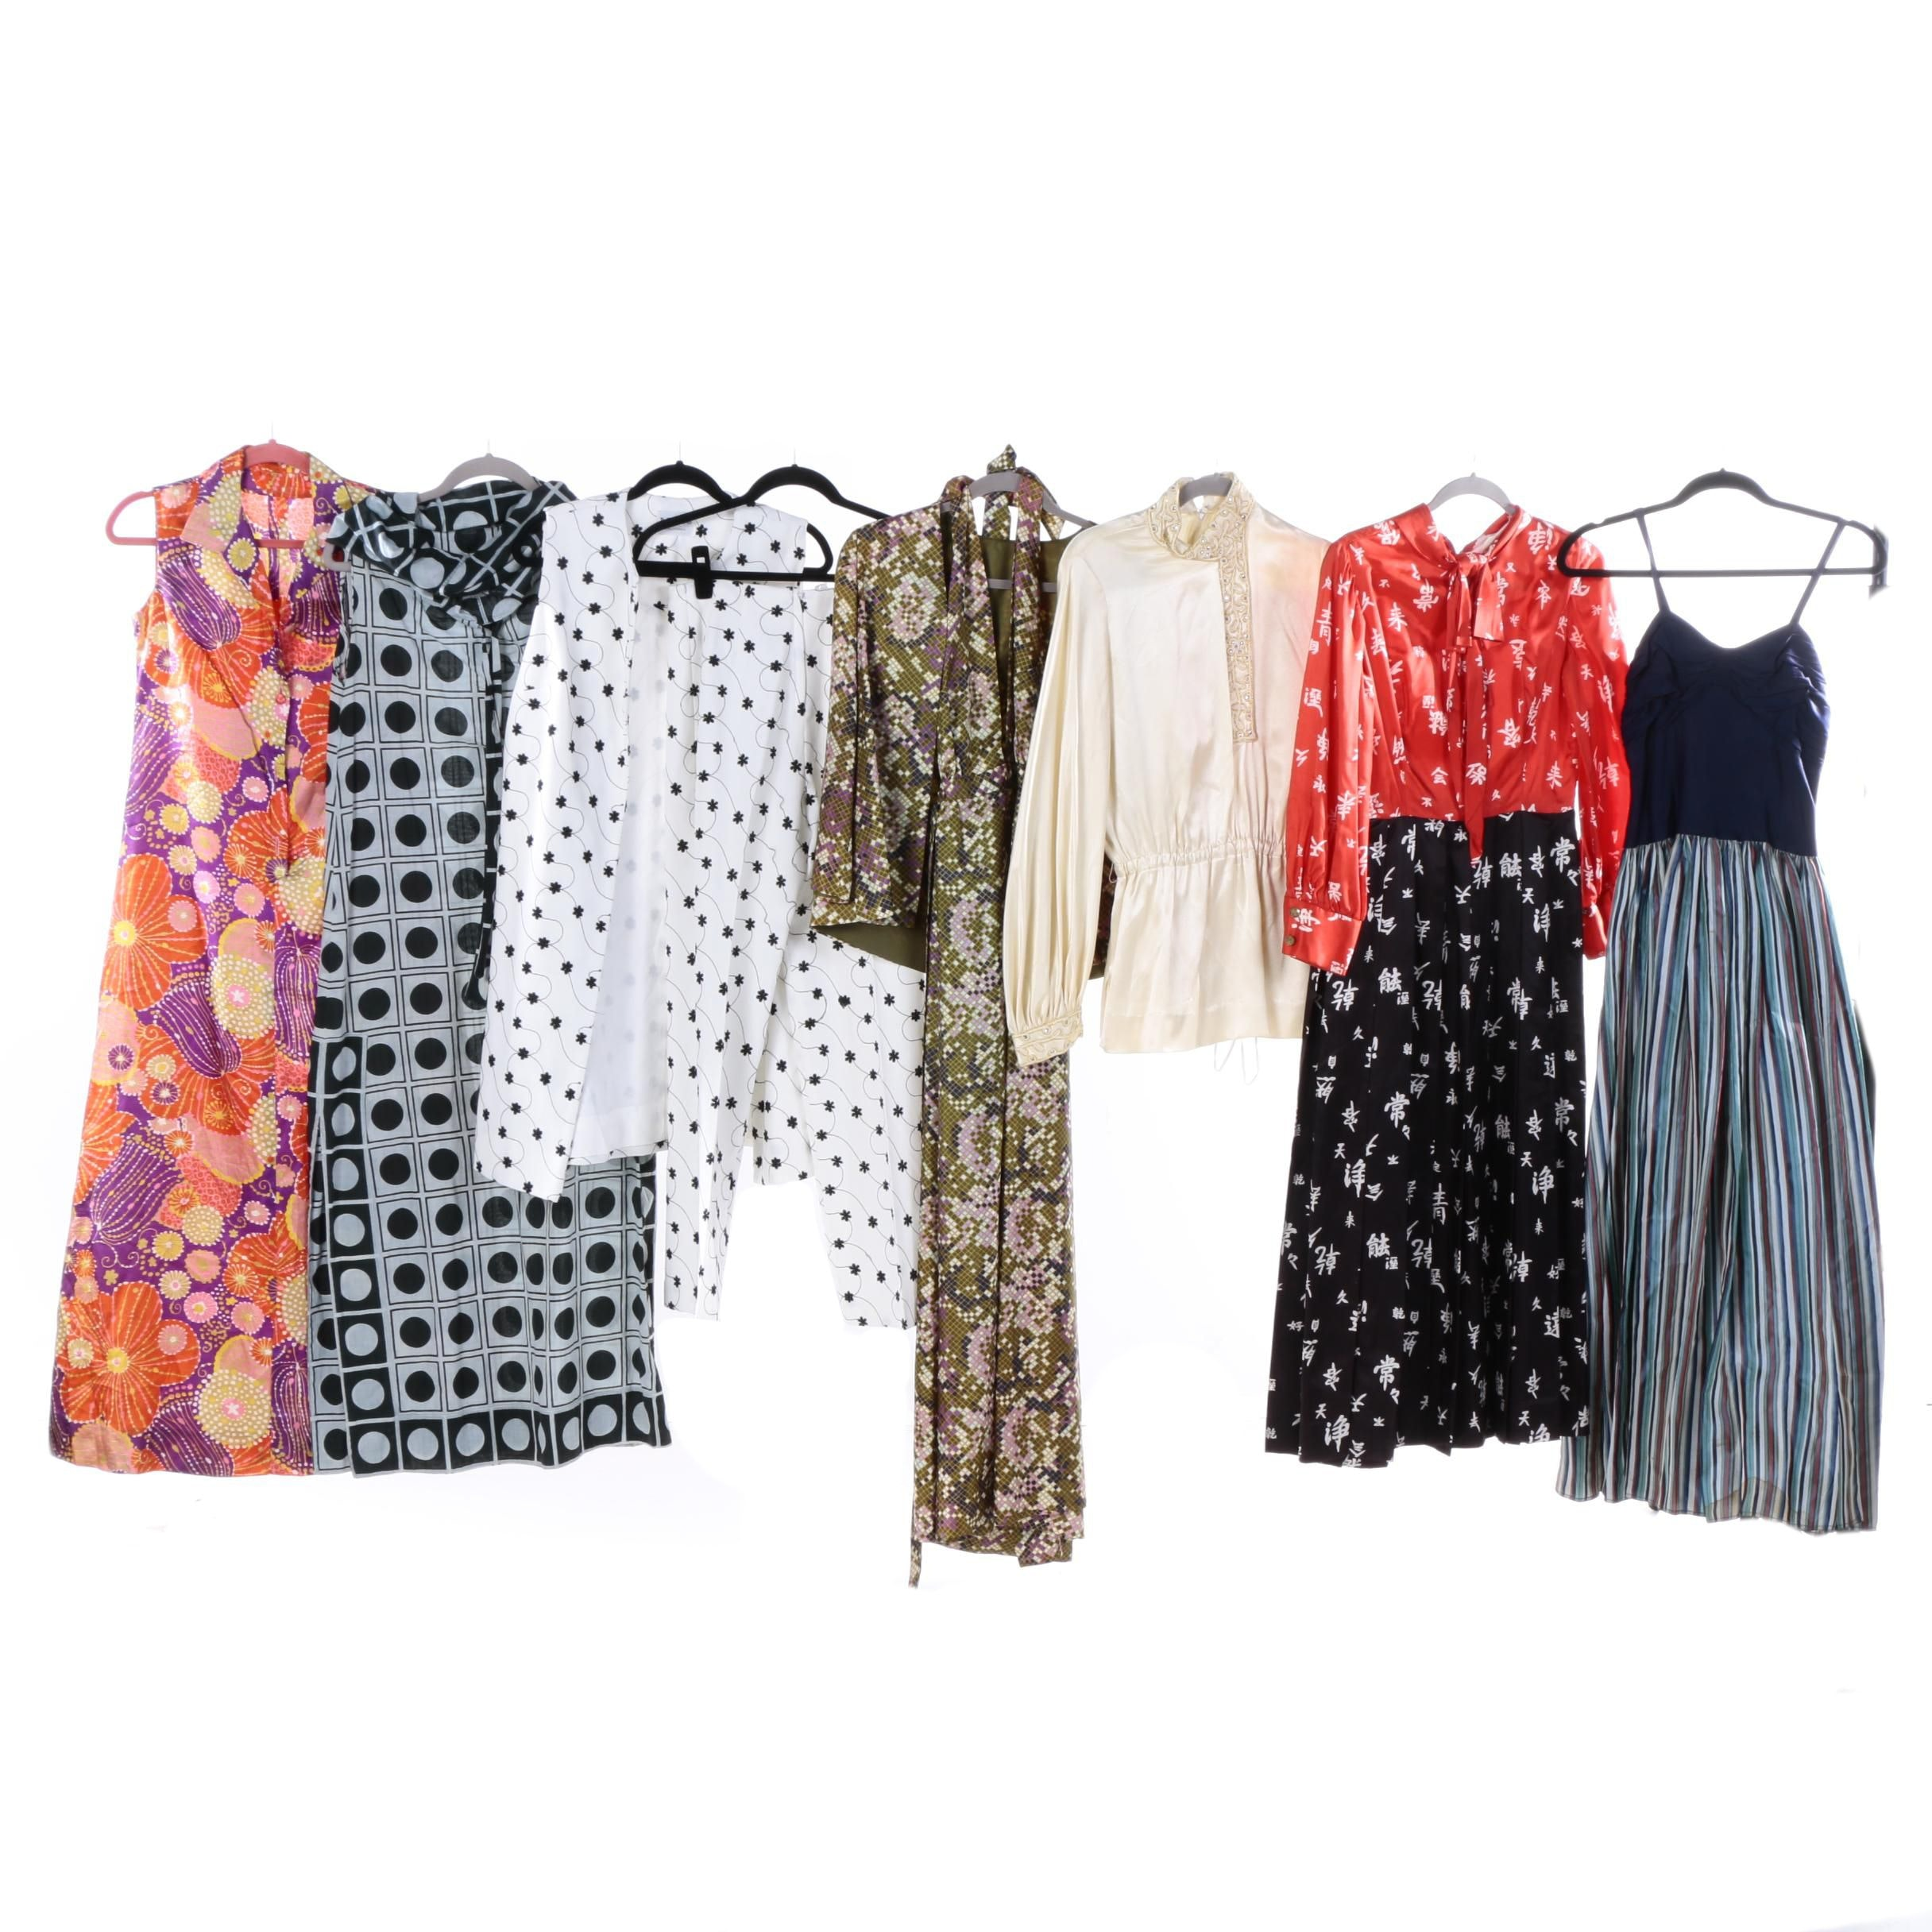 Circa 1970s Vintage Print Maxi Dresses and Pant Ensemble Including S. Eisenberg